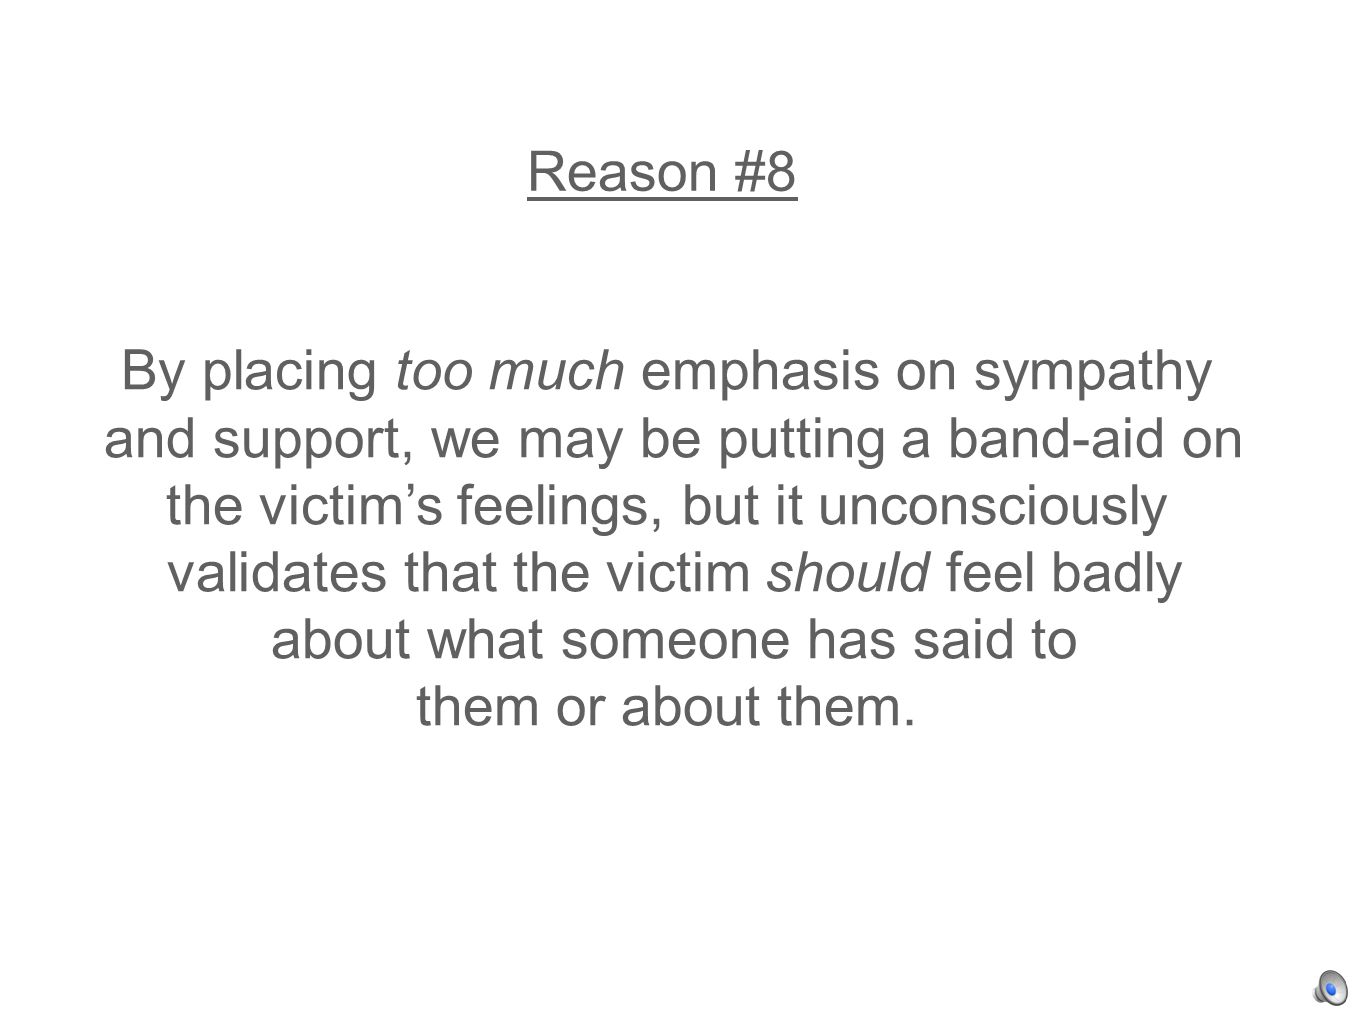 Reason #8 By placing too much emphasis on sympathy and support, we may be putting a band-aid on the victims feelings, but it unconsciously validates that the victim should feel badly about what someone has said to them or about them.